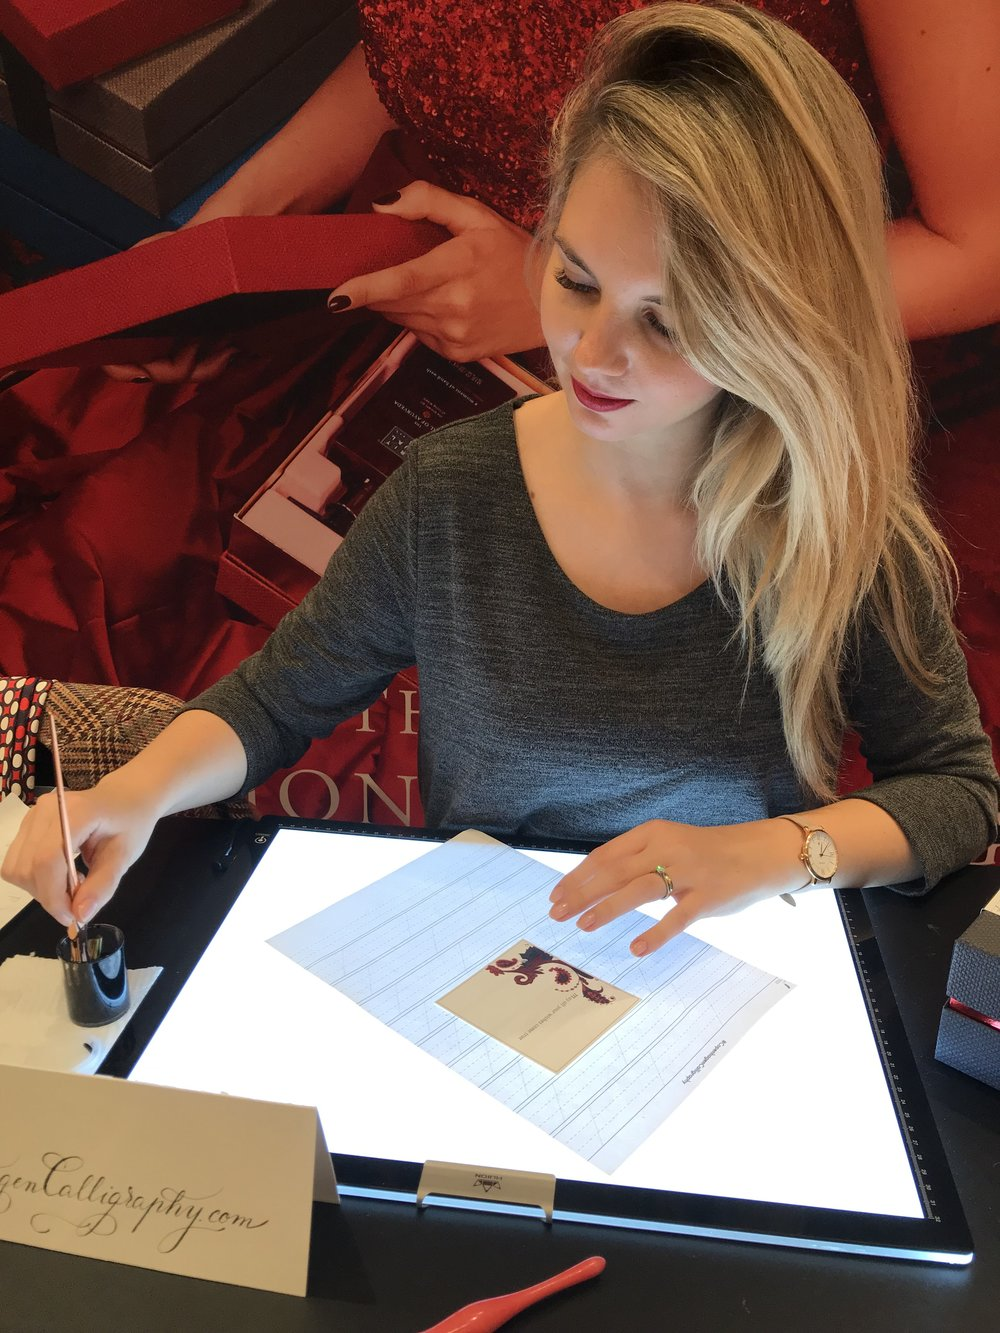 Pop up special event calligrapher on spot handwriting Copenhagen